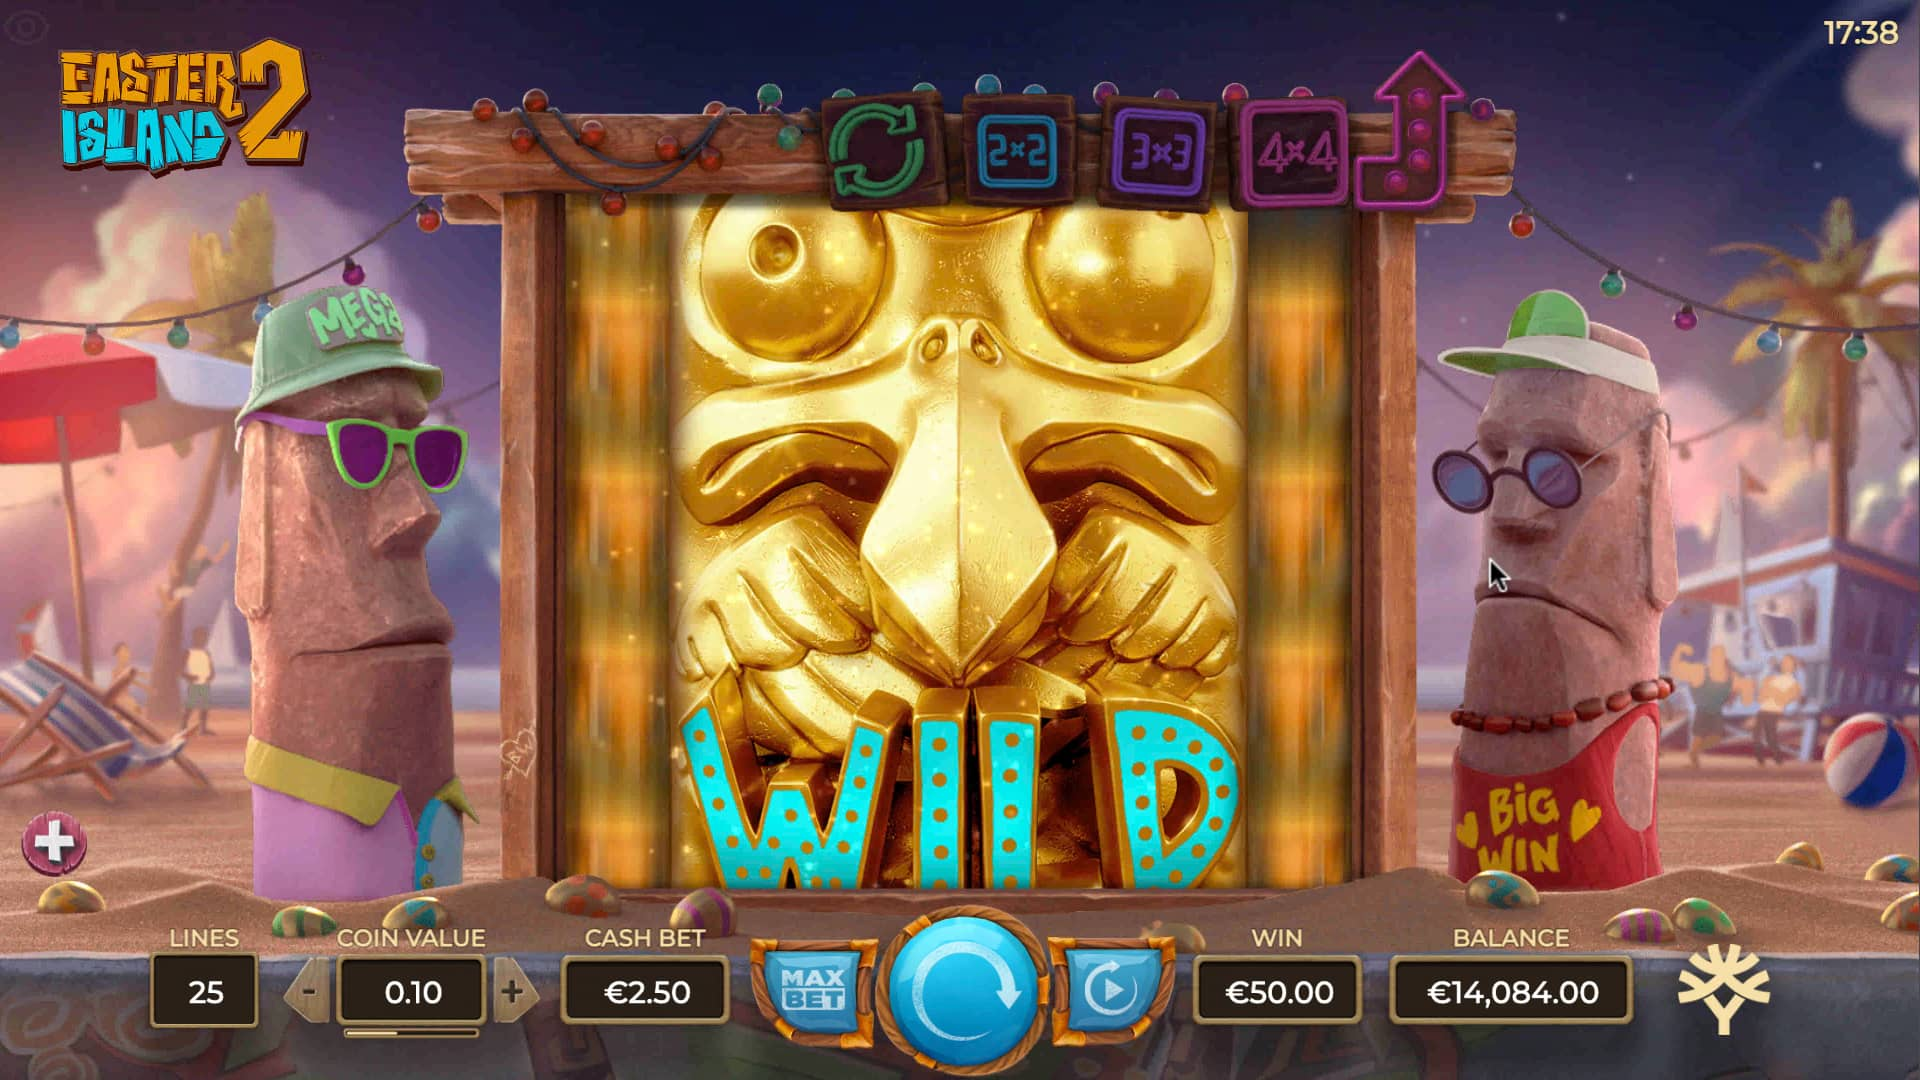 Easter Island Slot Gameplay 2